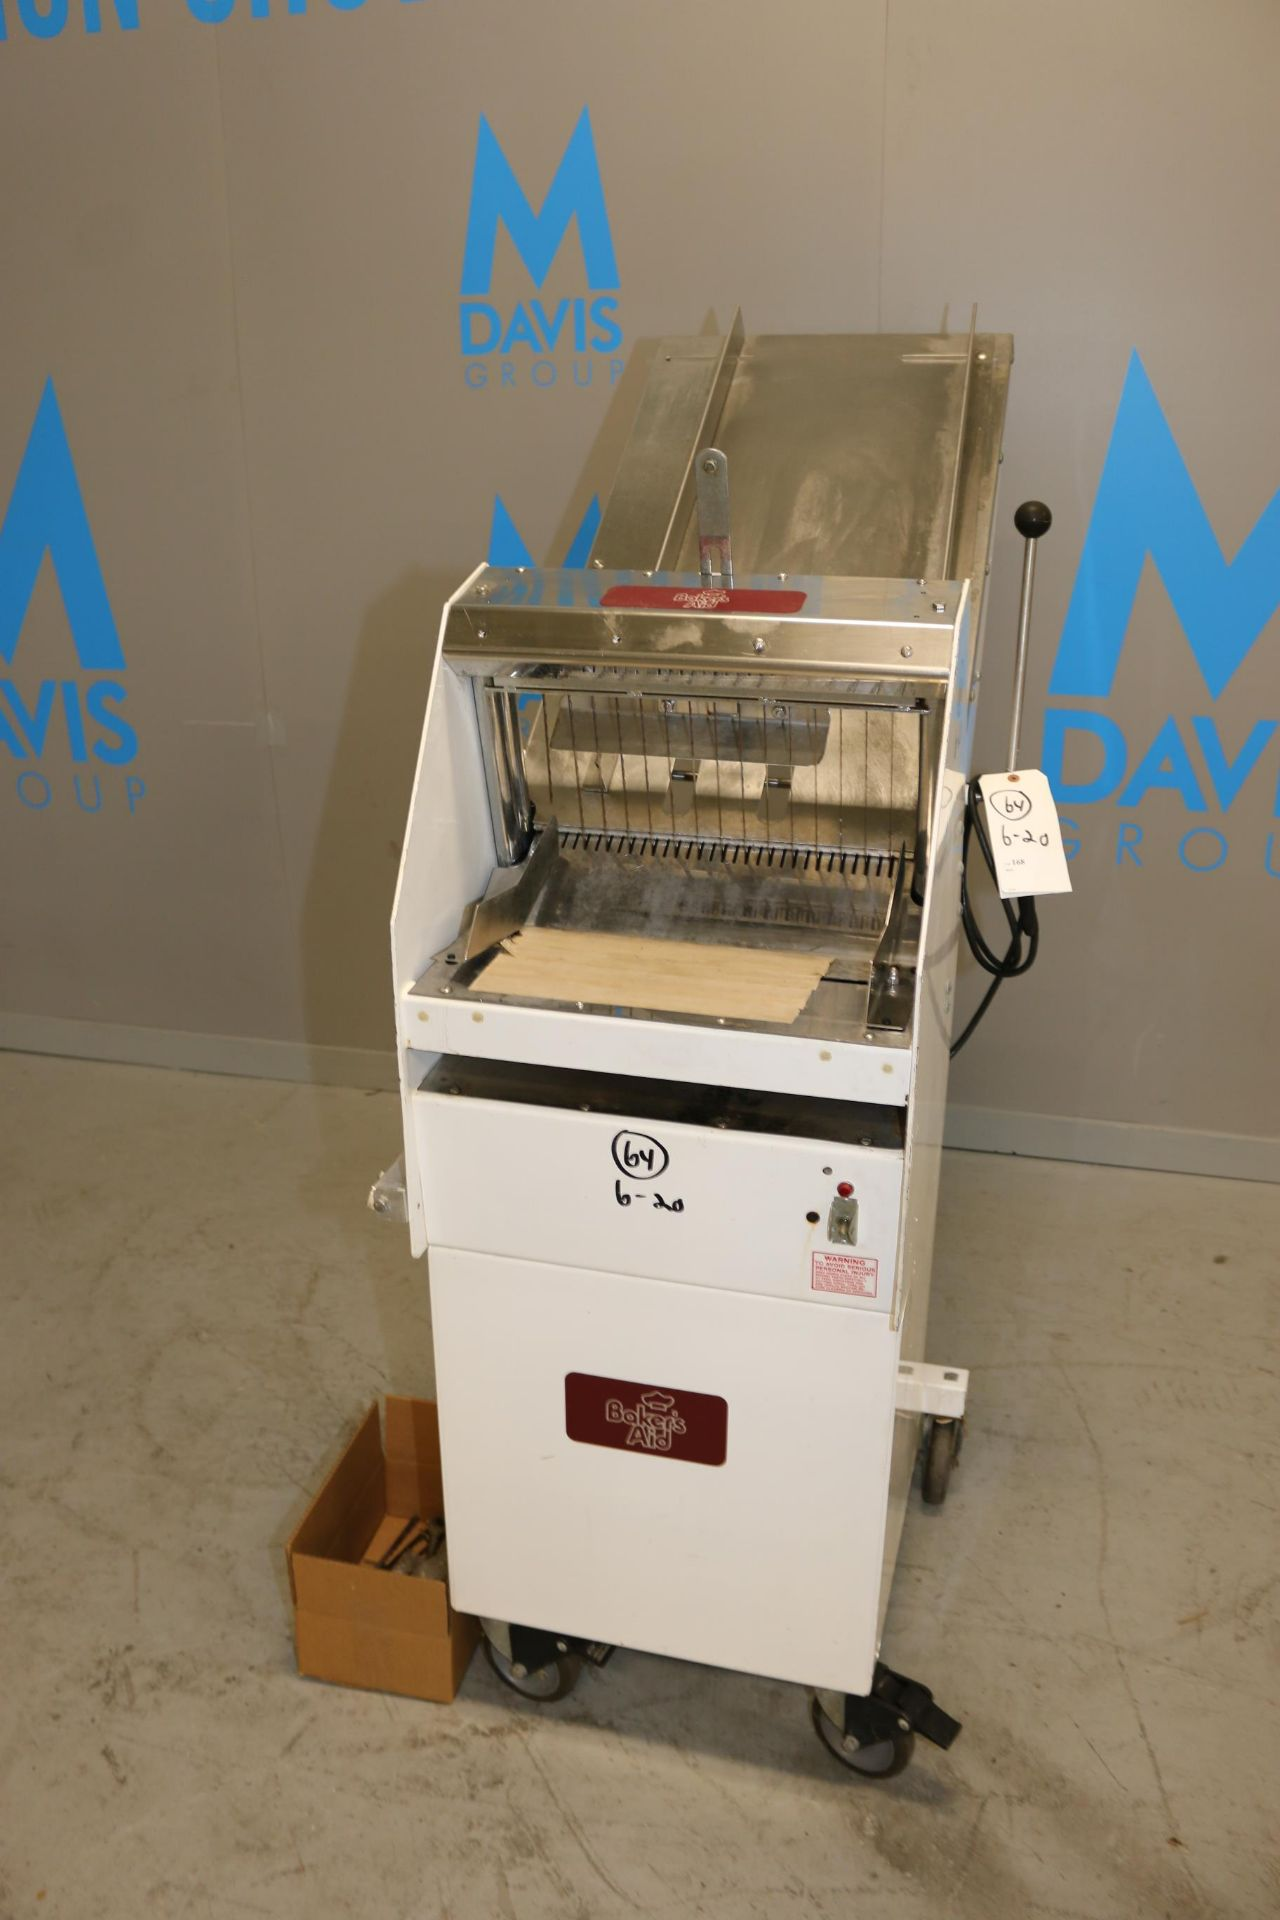 Lot 59 - Baker's Aid Bread Slicer, M/N GMB12, S/N 9214 2326 00425, 115 Volts, 1 Phase, Mounted on Portable